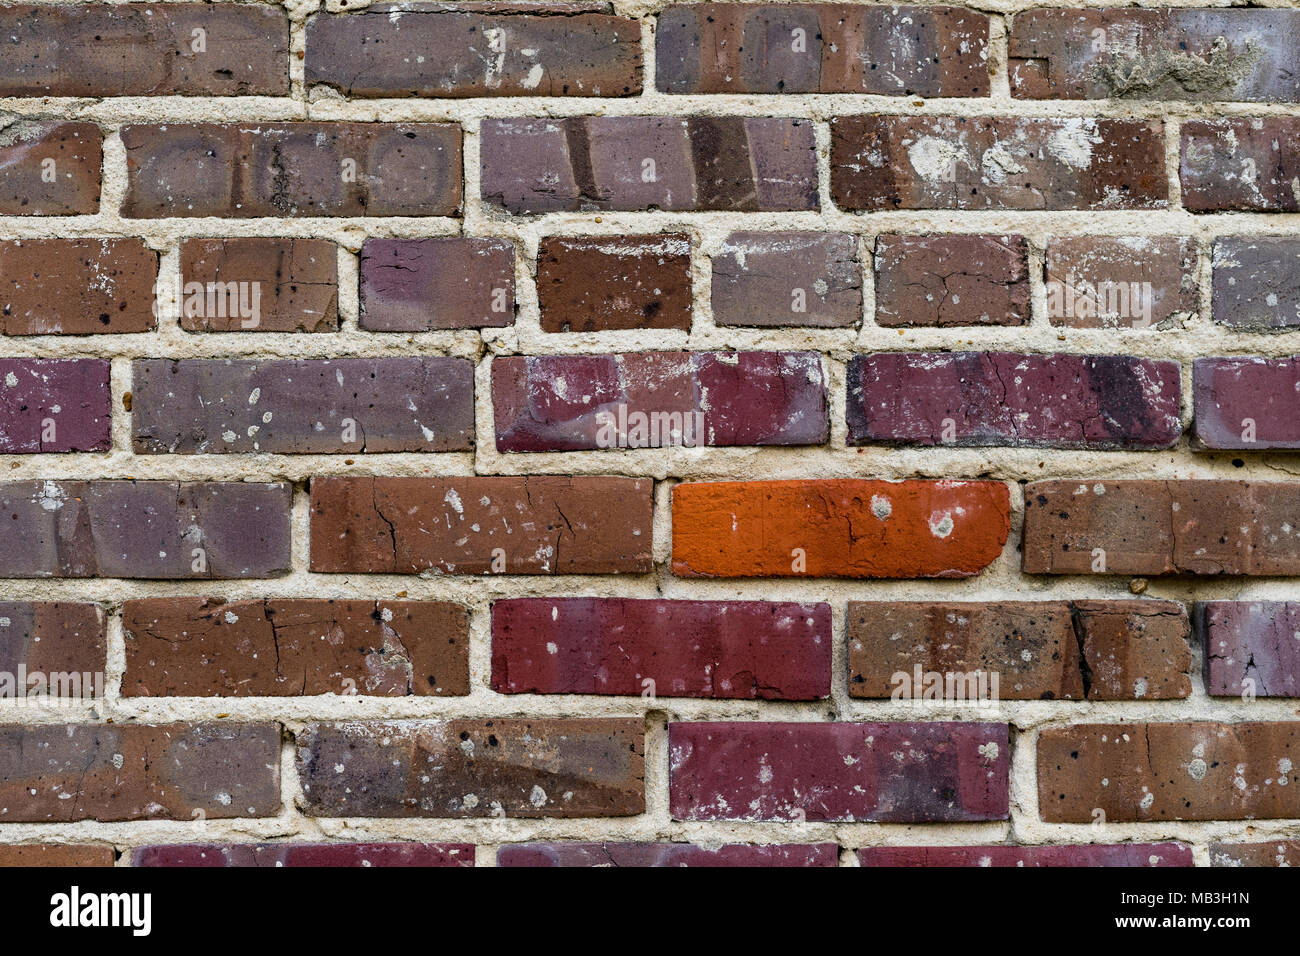 This brick has seen better days, but is still standing. - Stock Image